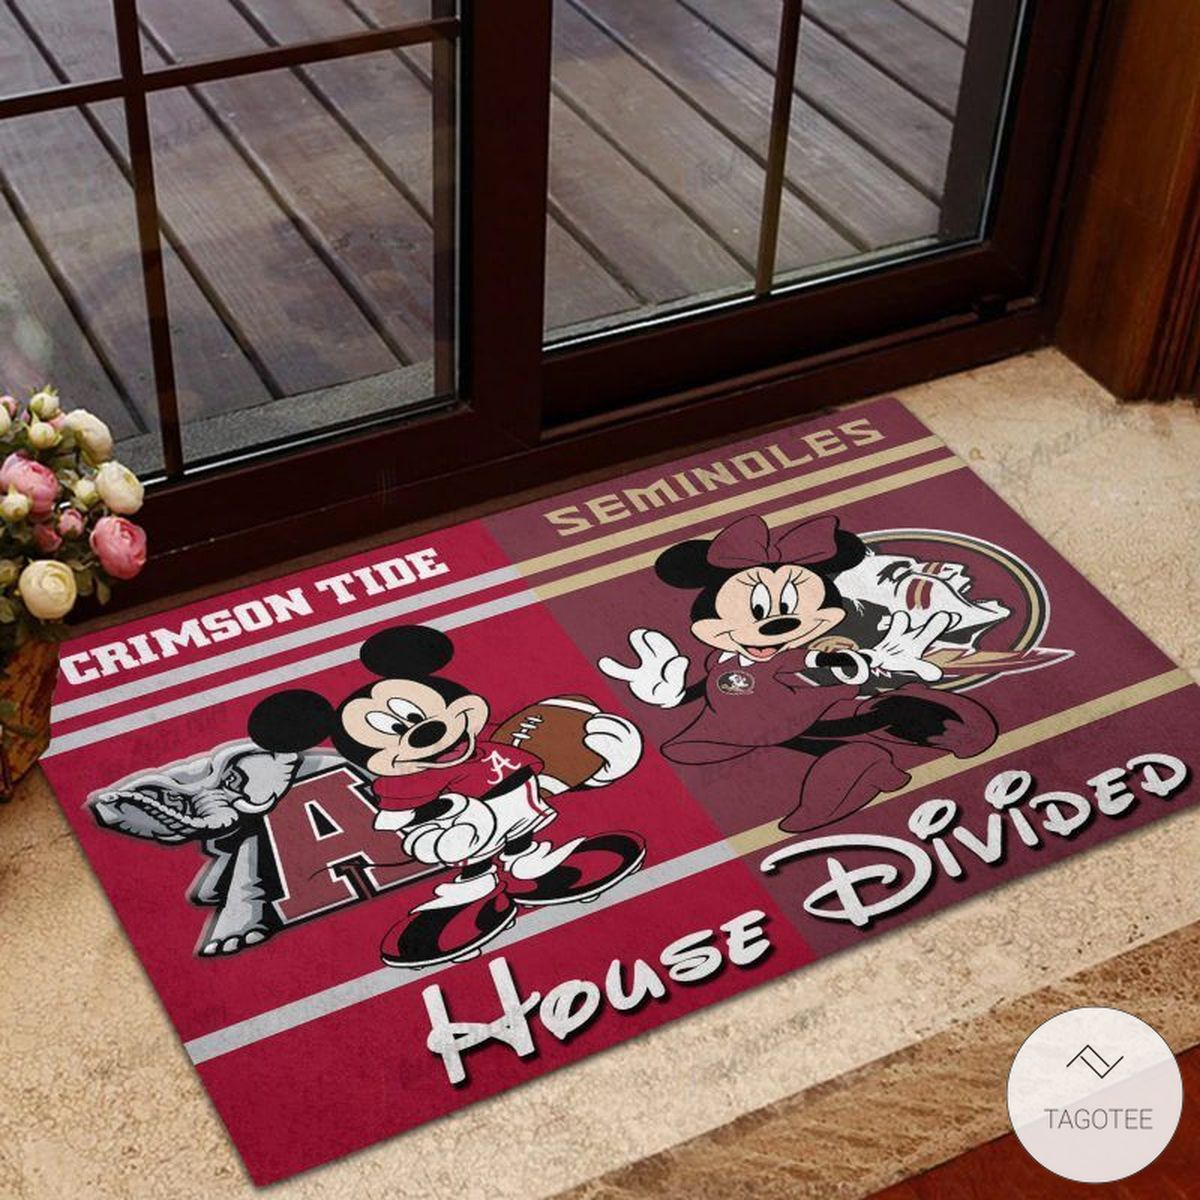 Crimson Tide House Divided Seminoles Mickey Mouse And Minnie Mouse Doormat